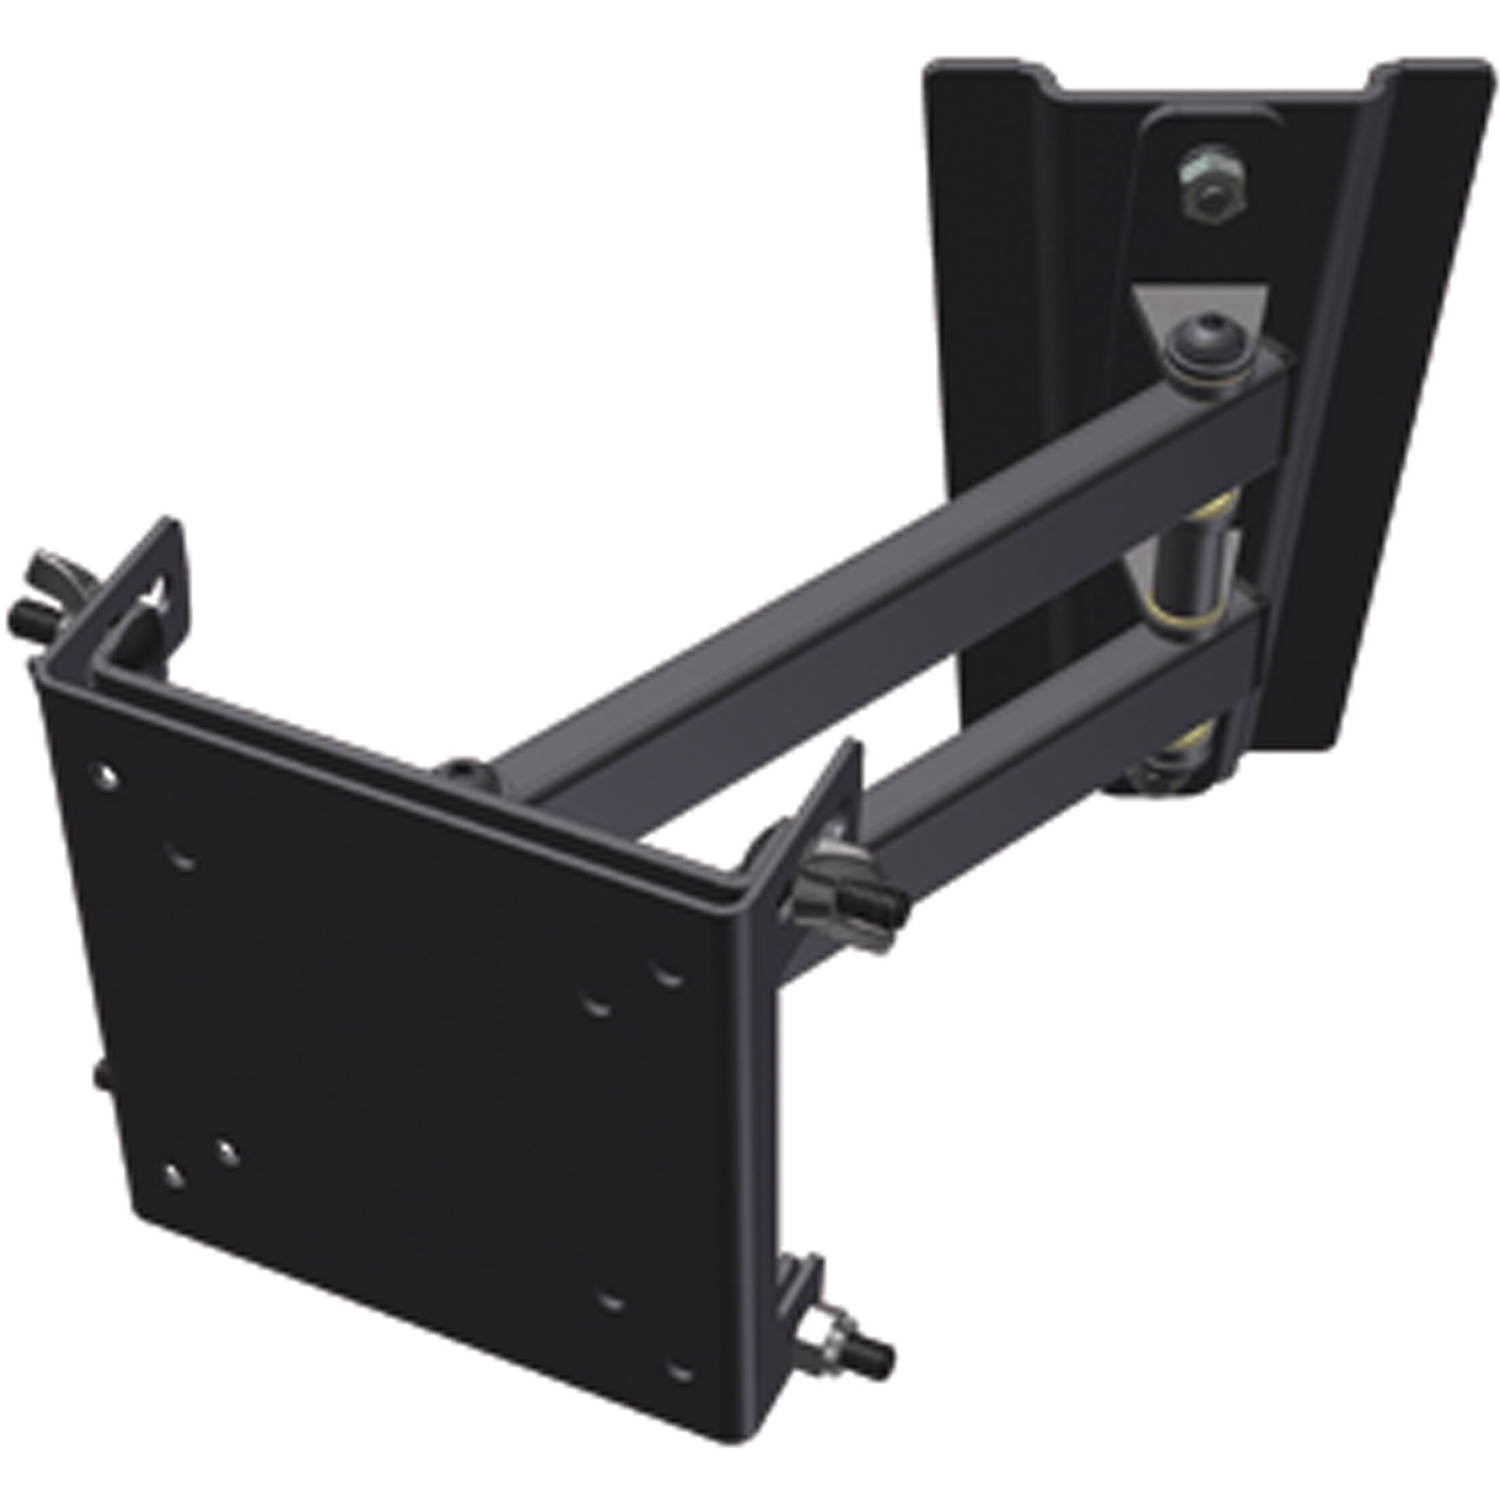 MORryde TV5-003H Portable Wall Mount